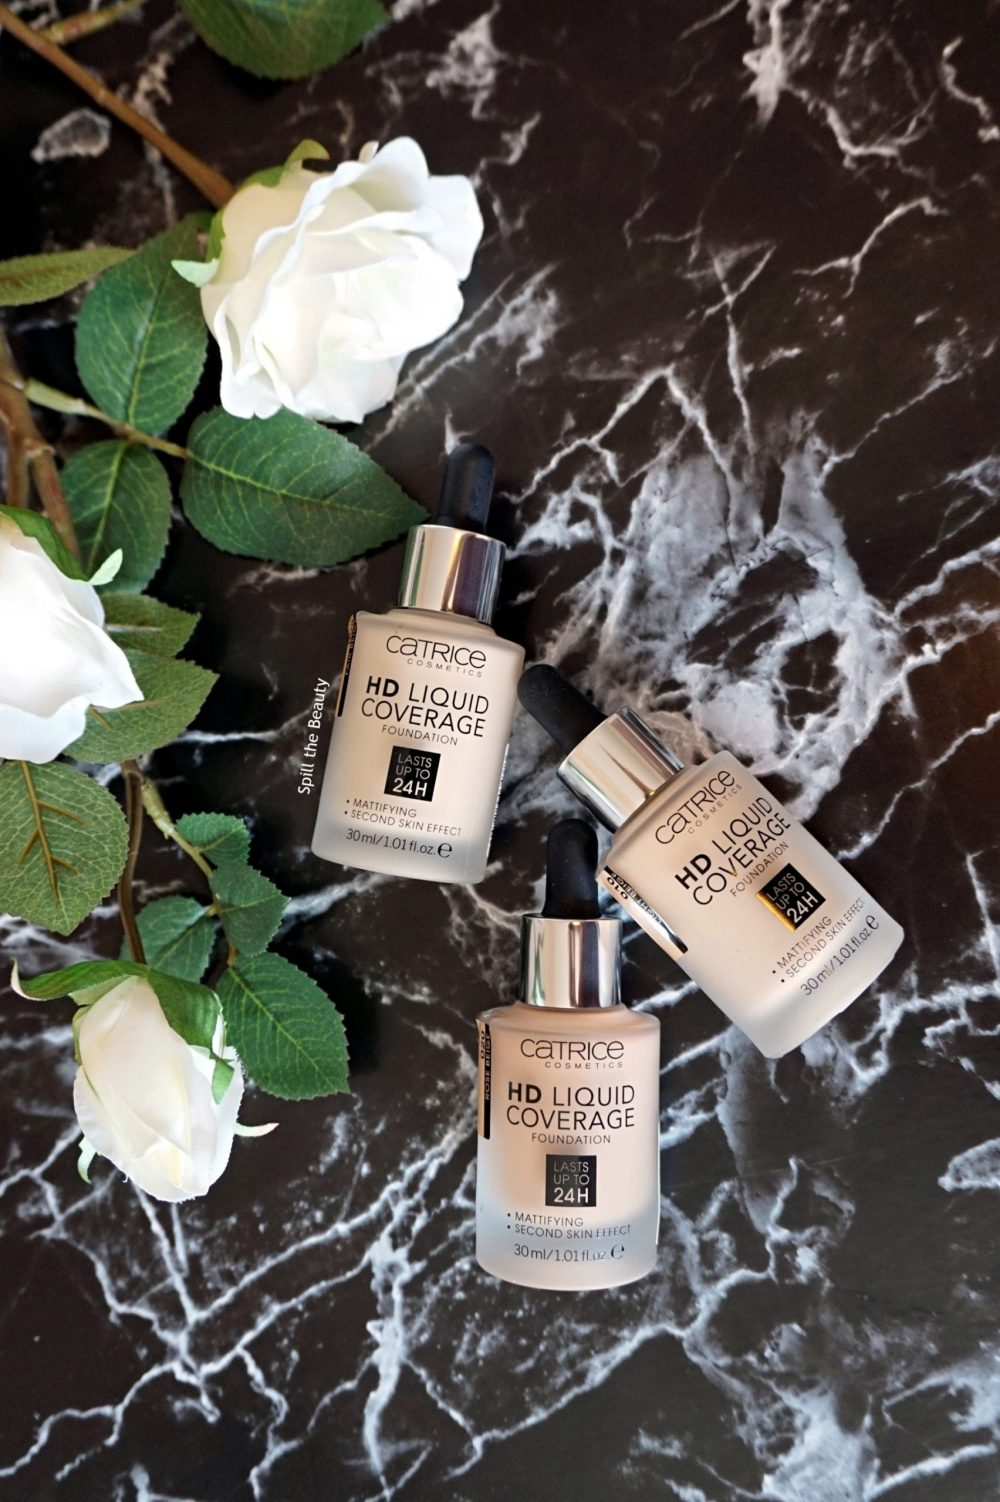 CATRICE HD Liquid Coverage Foundation – Review, Swatches, Before and After